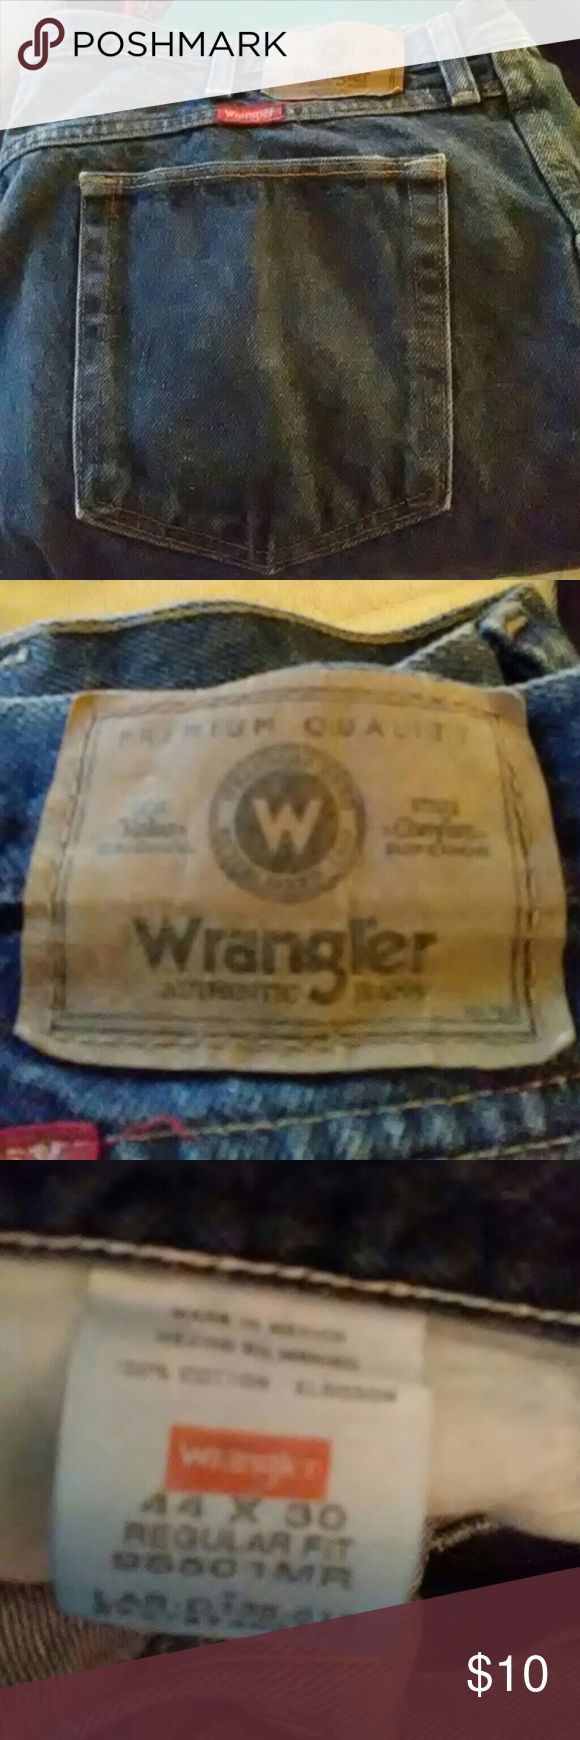 Wrangler jeans Regular fit dk blue jeans. 44x30 ,Excellent preowned condition.  Smoker and pets in the home. Wrangler Jeans Straight